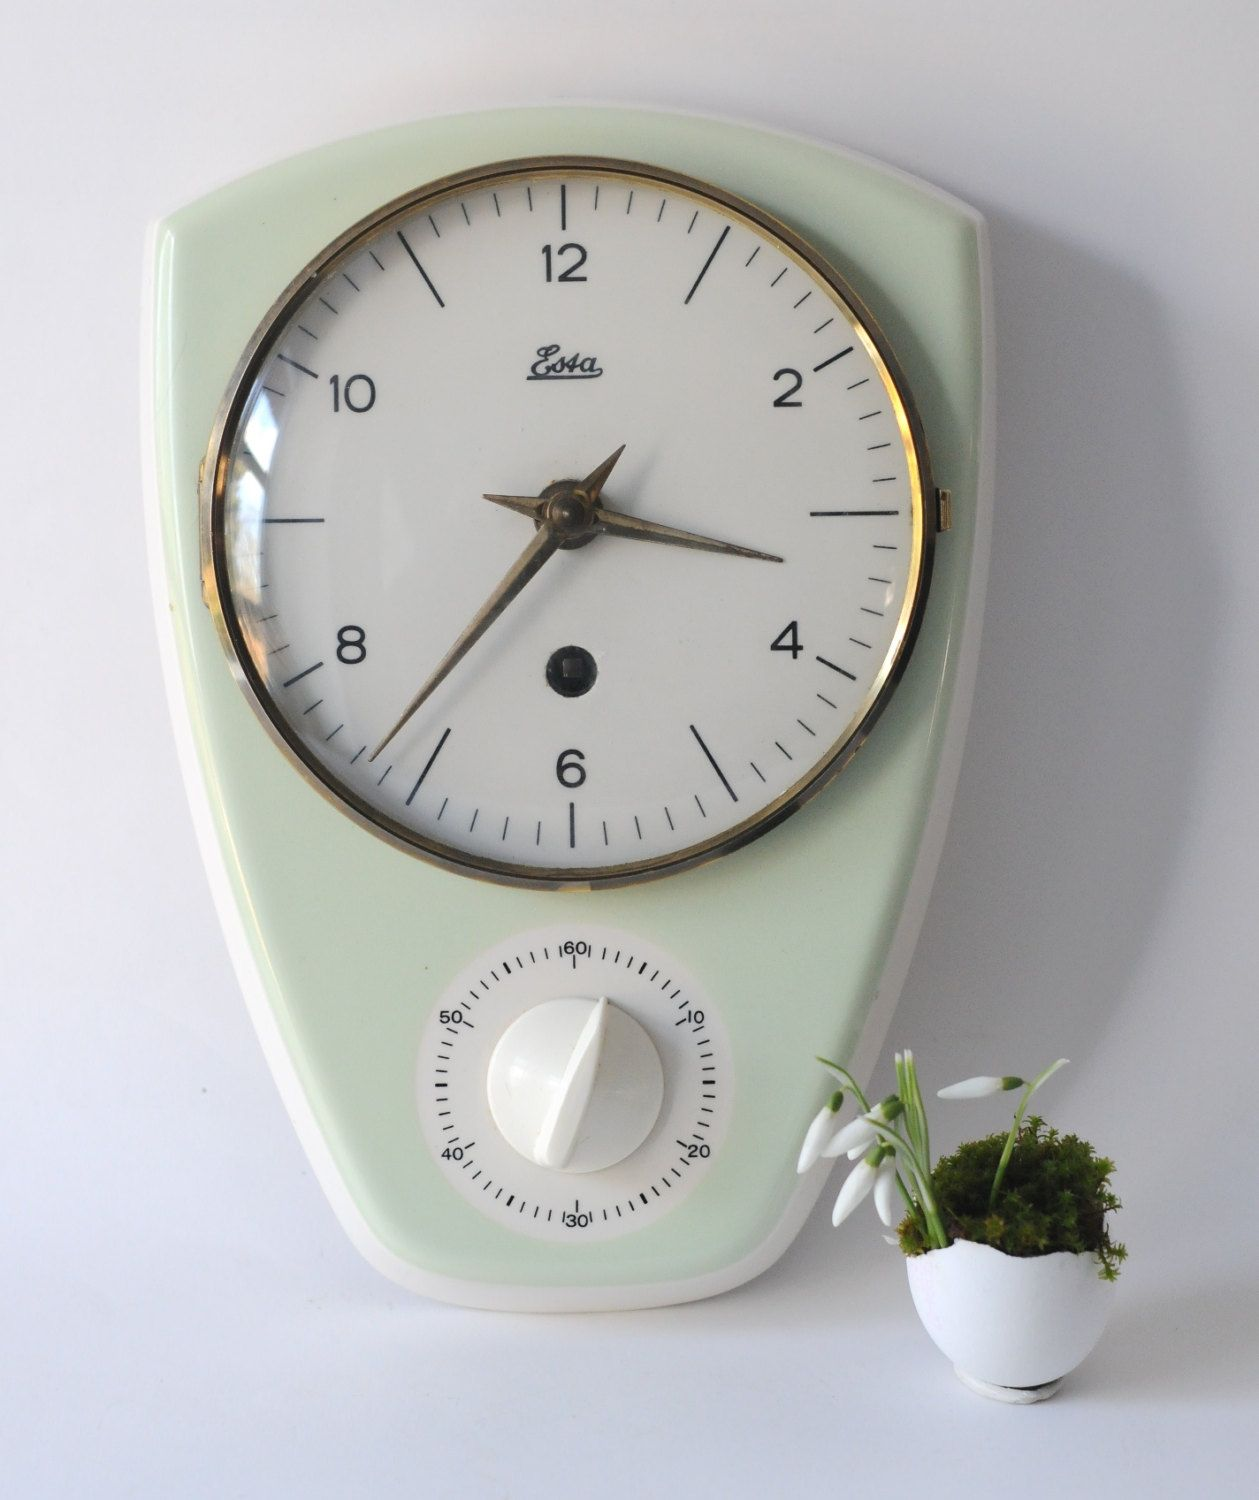 Vintage kitchen clock esta 1950 kitchen wall clock with timer vintage kitchen clock esta 1950 kitchen wall clock with timer made in germany amipublicfo Images